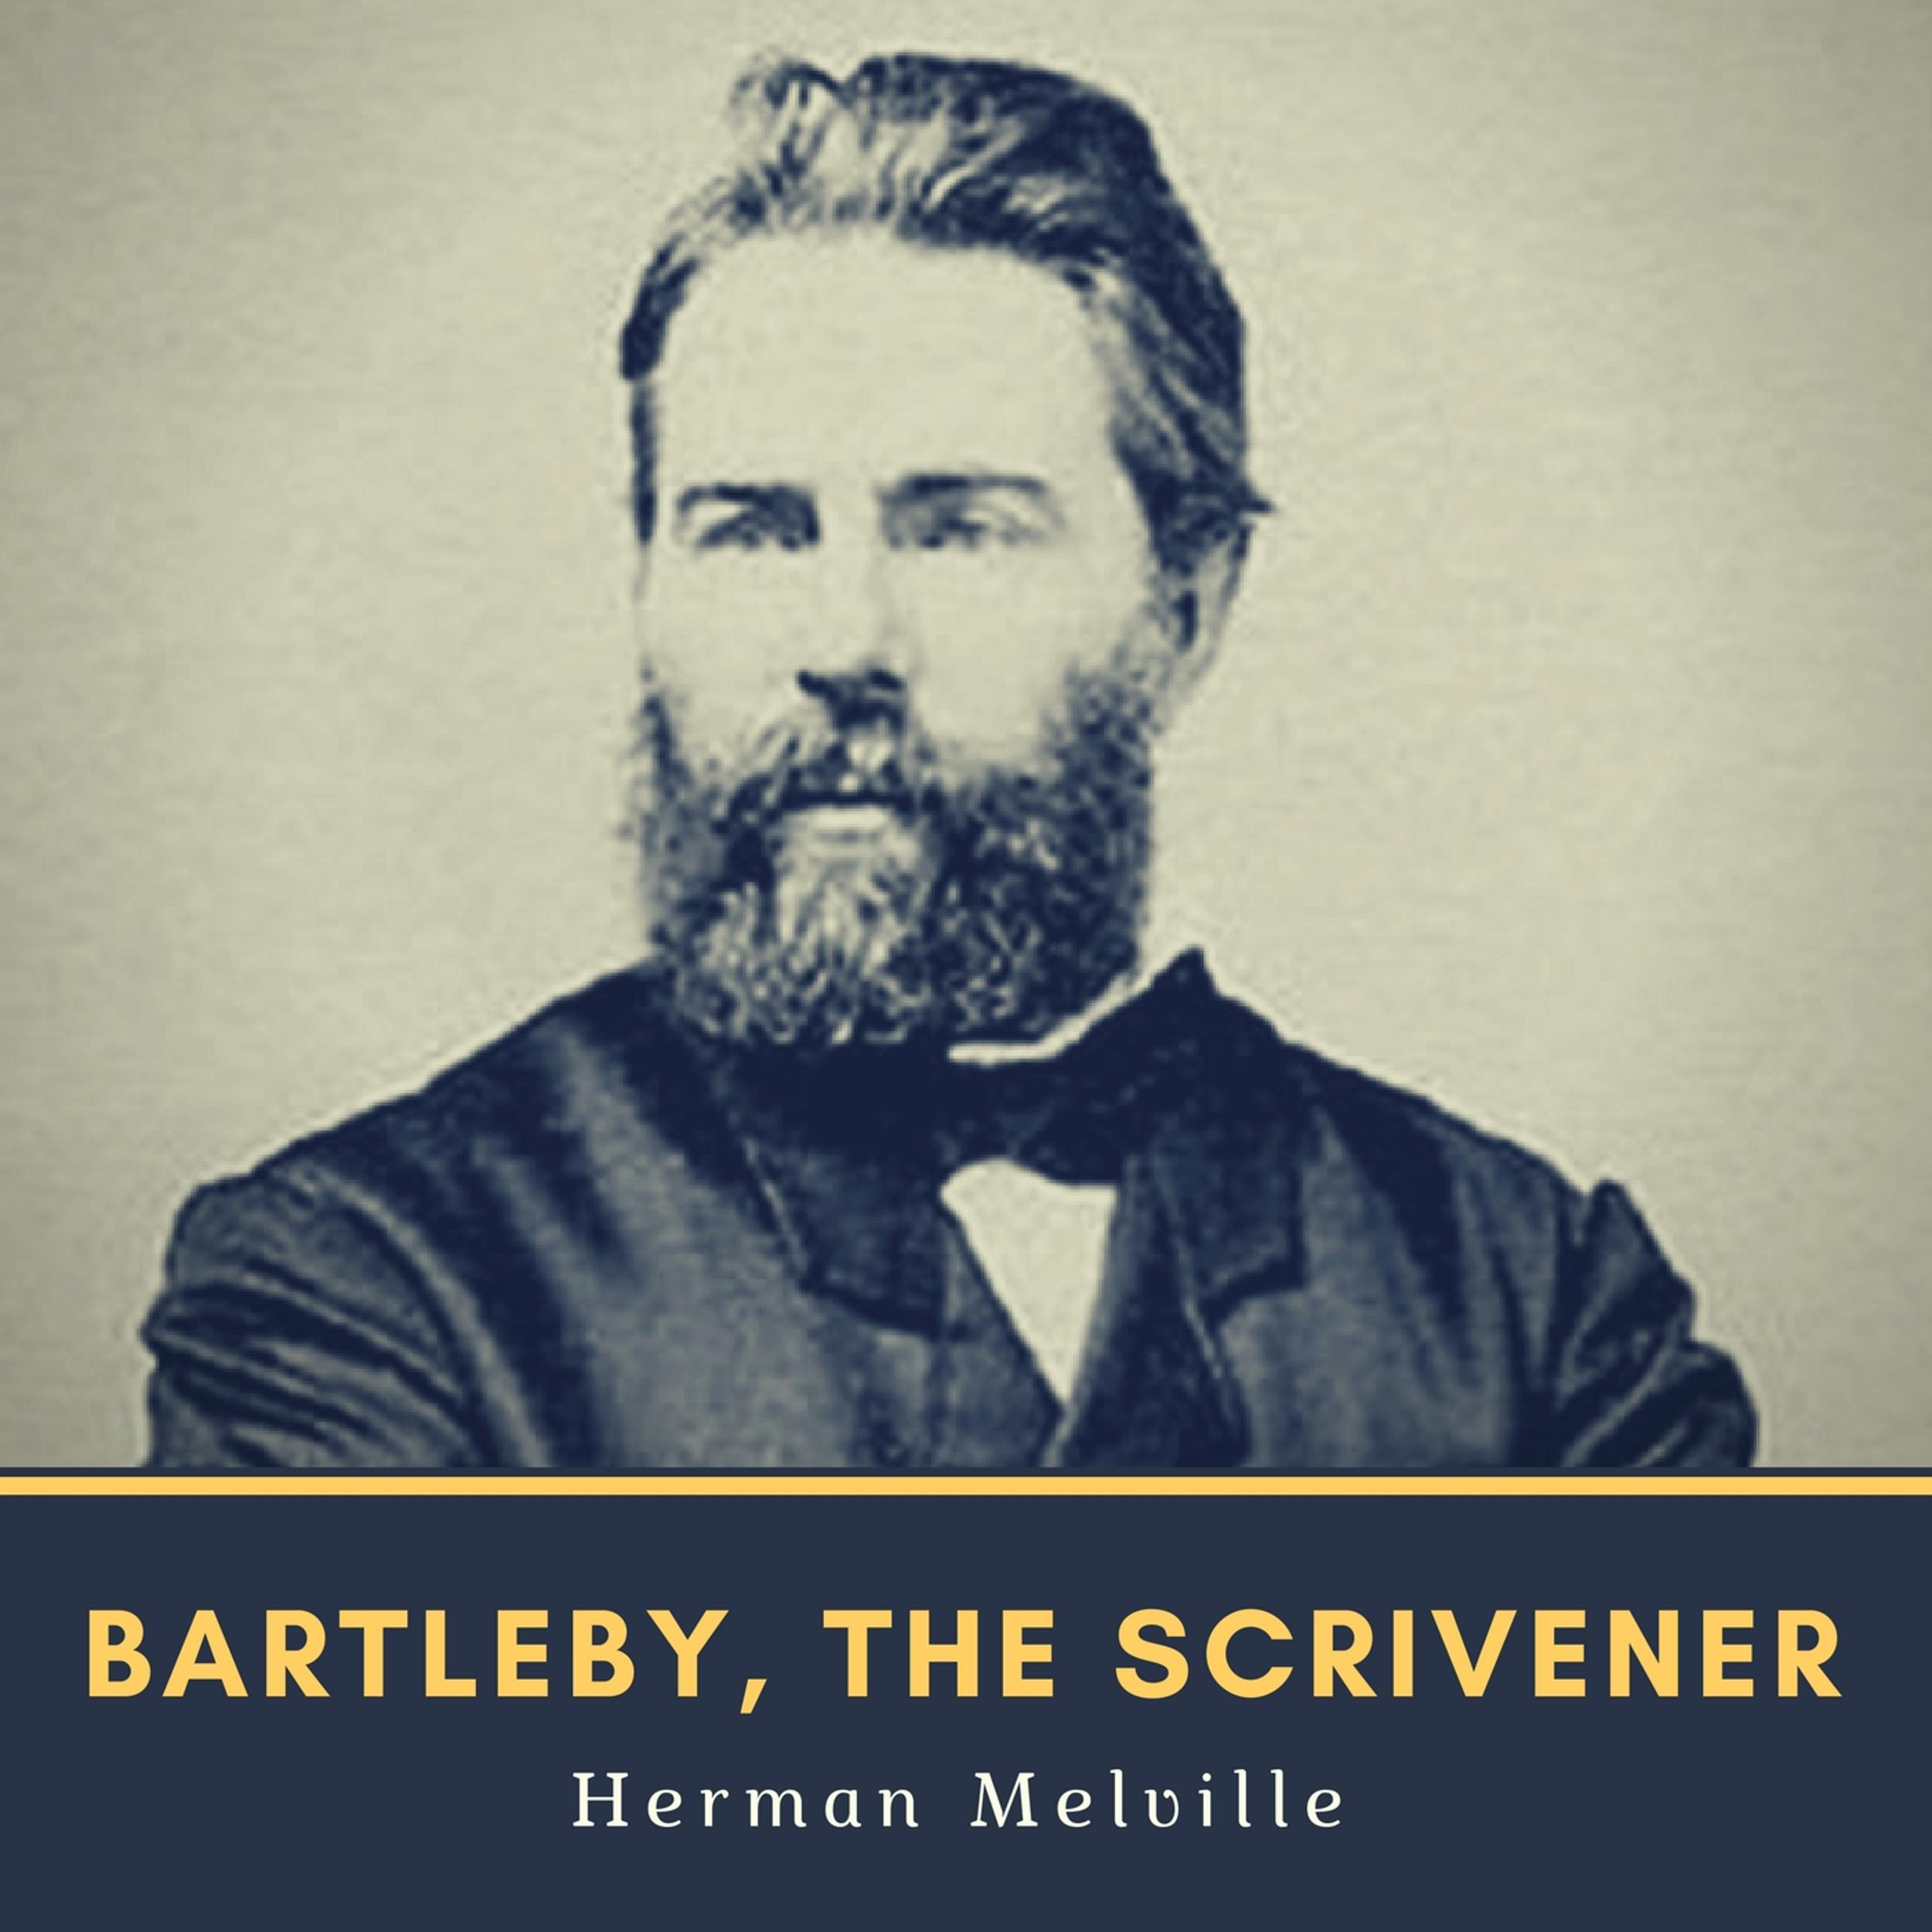 Health Care Essay Topics Bartleby The Scrivener A Story Of Wall Street Audiobook By Herman  Melville Essay Thesis Statement also Interesting Persuasive Essay Topics For High School Students Bartleby The Scrivener  Audiobook By Herman Melville Read By  Essay About Paper